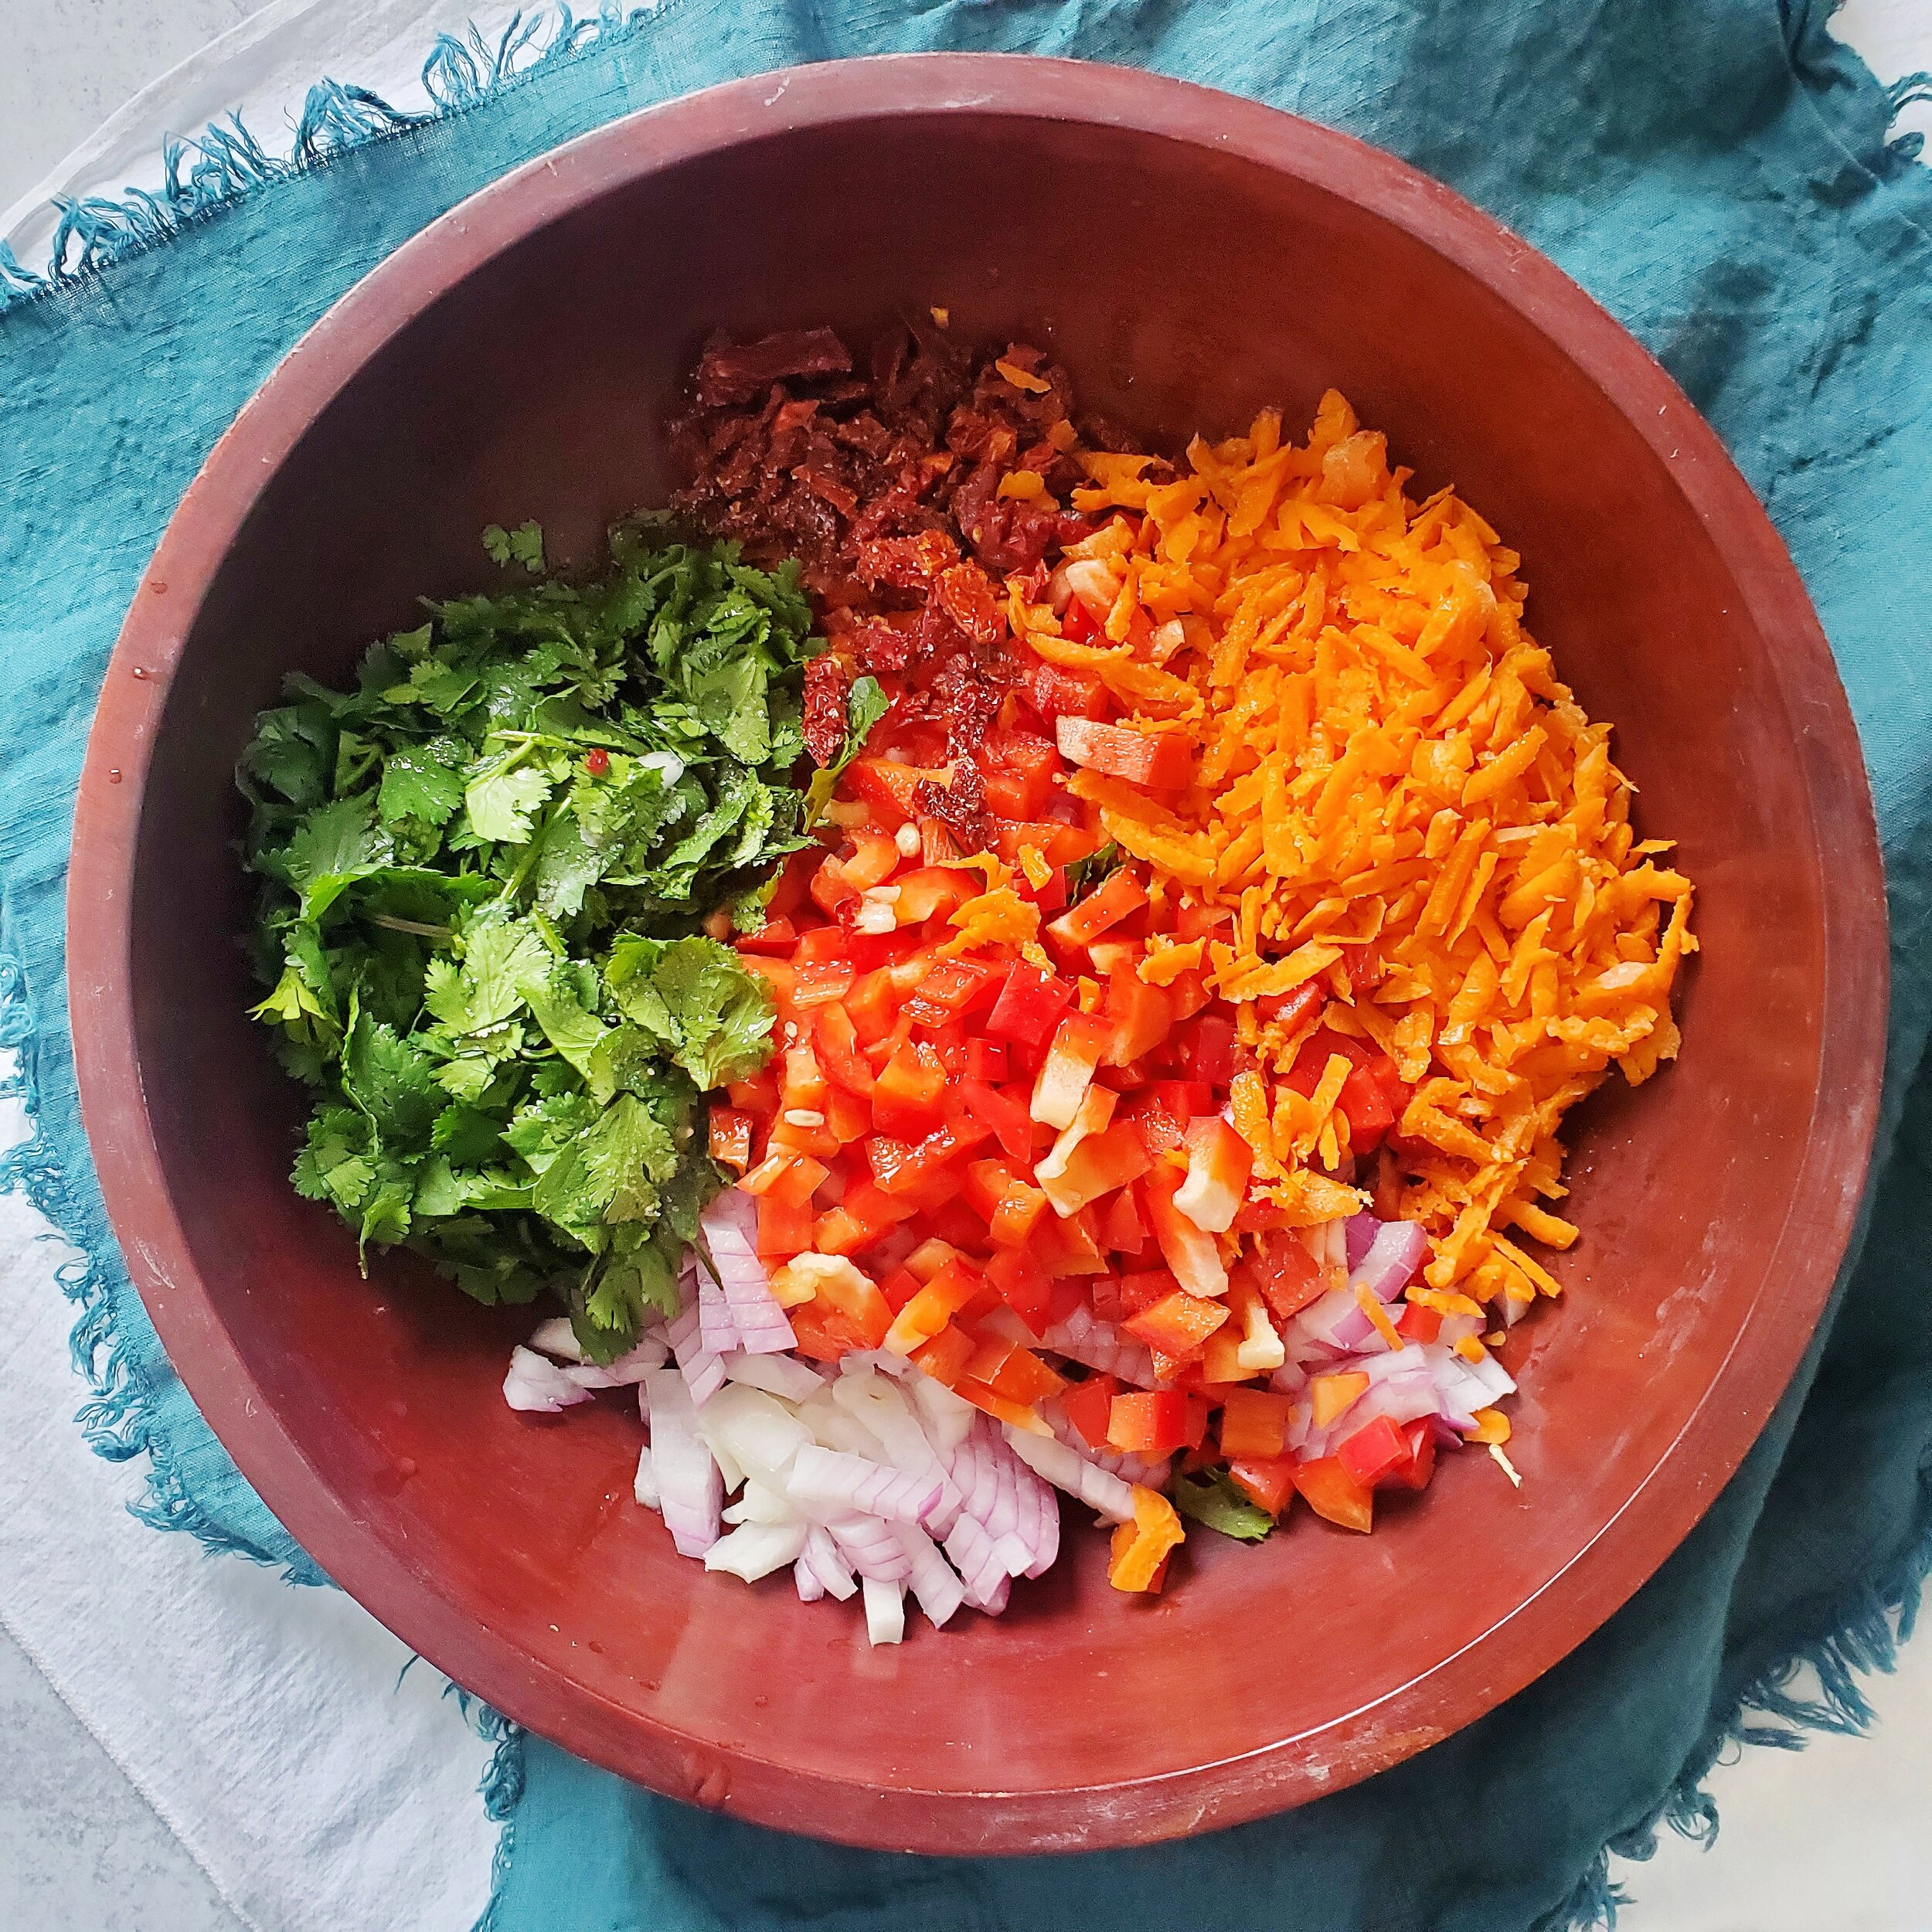 Chop all the veggies and add to a large bowl. Add the oil, lemon juice, and salt & pepper -